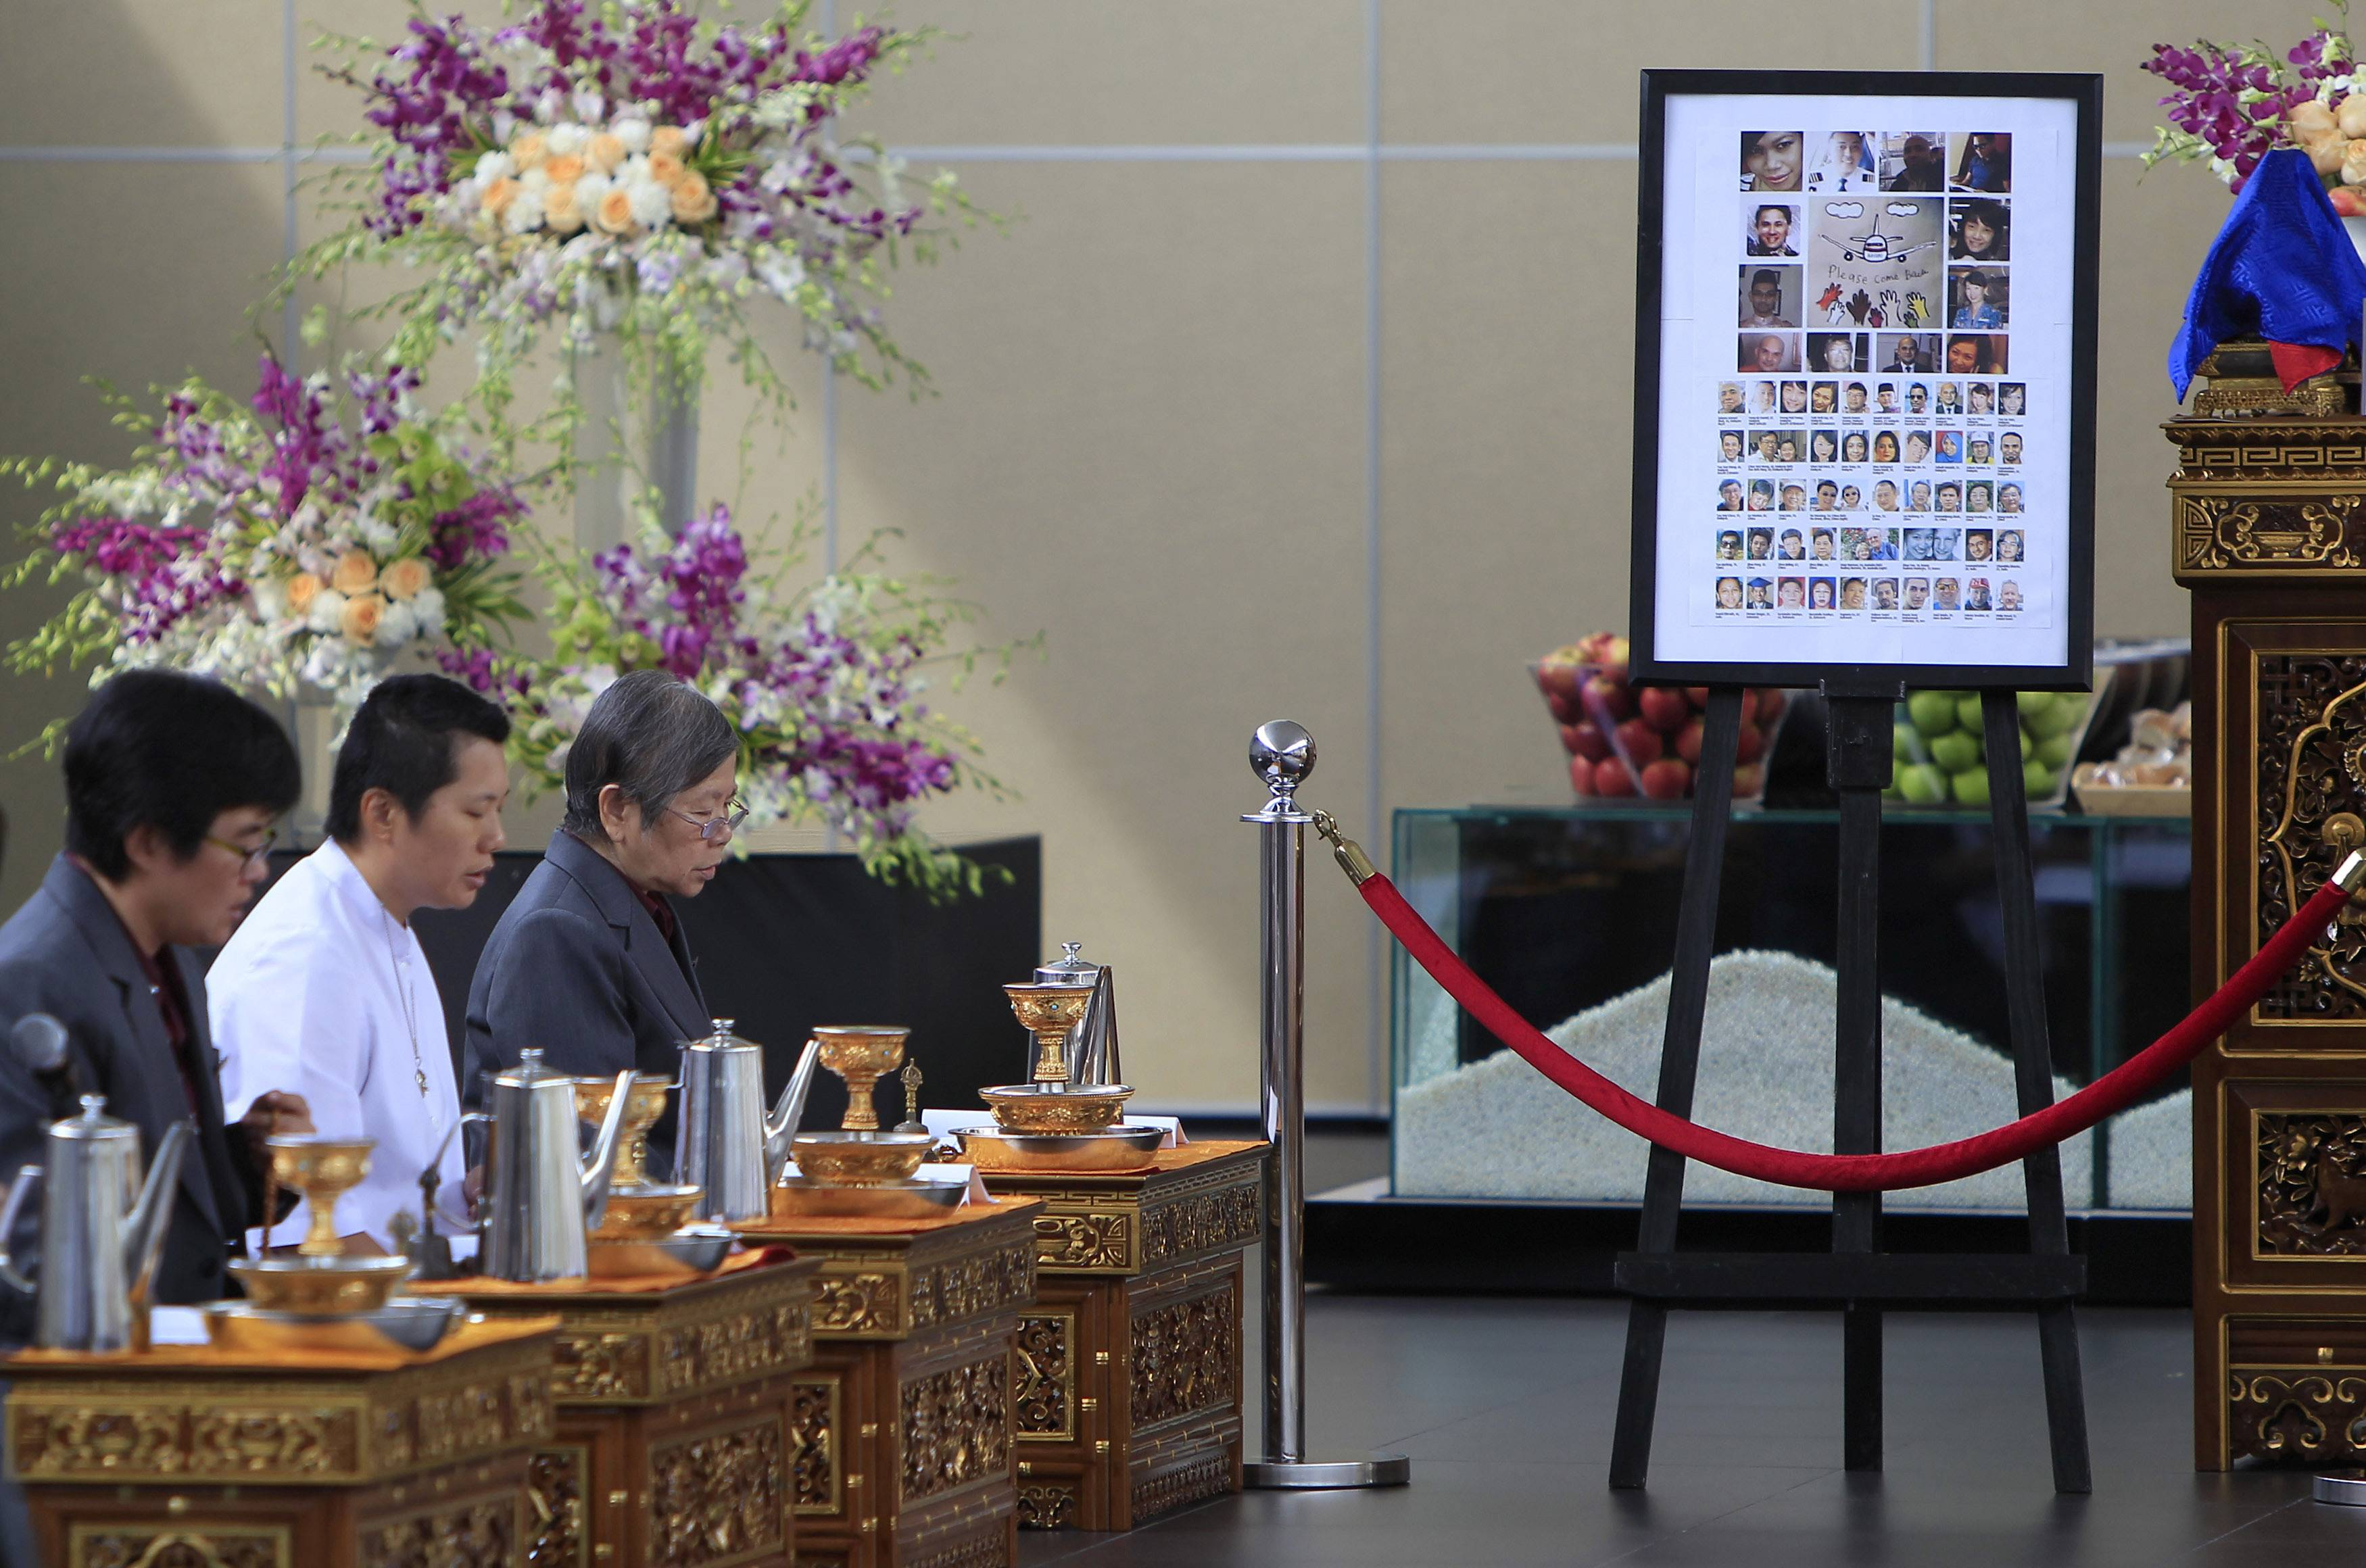 Photos of passengers and crew members onboard the missing Malaysia Airlines Flight 370 are placed at Kechara Forest Retreat as Buddhist pastors offer prayers for them in Bentong, outside Kuala Lumpur, Malaysia, Sunday.